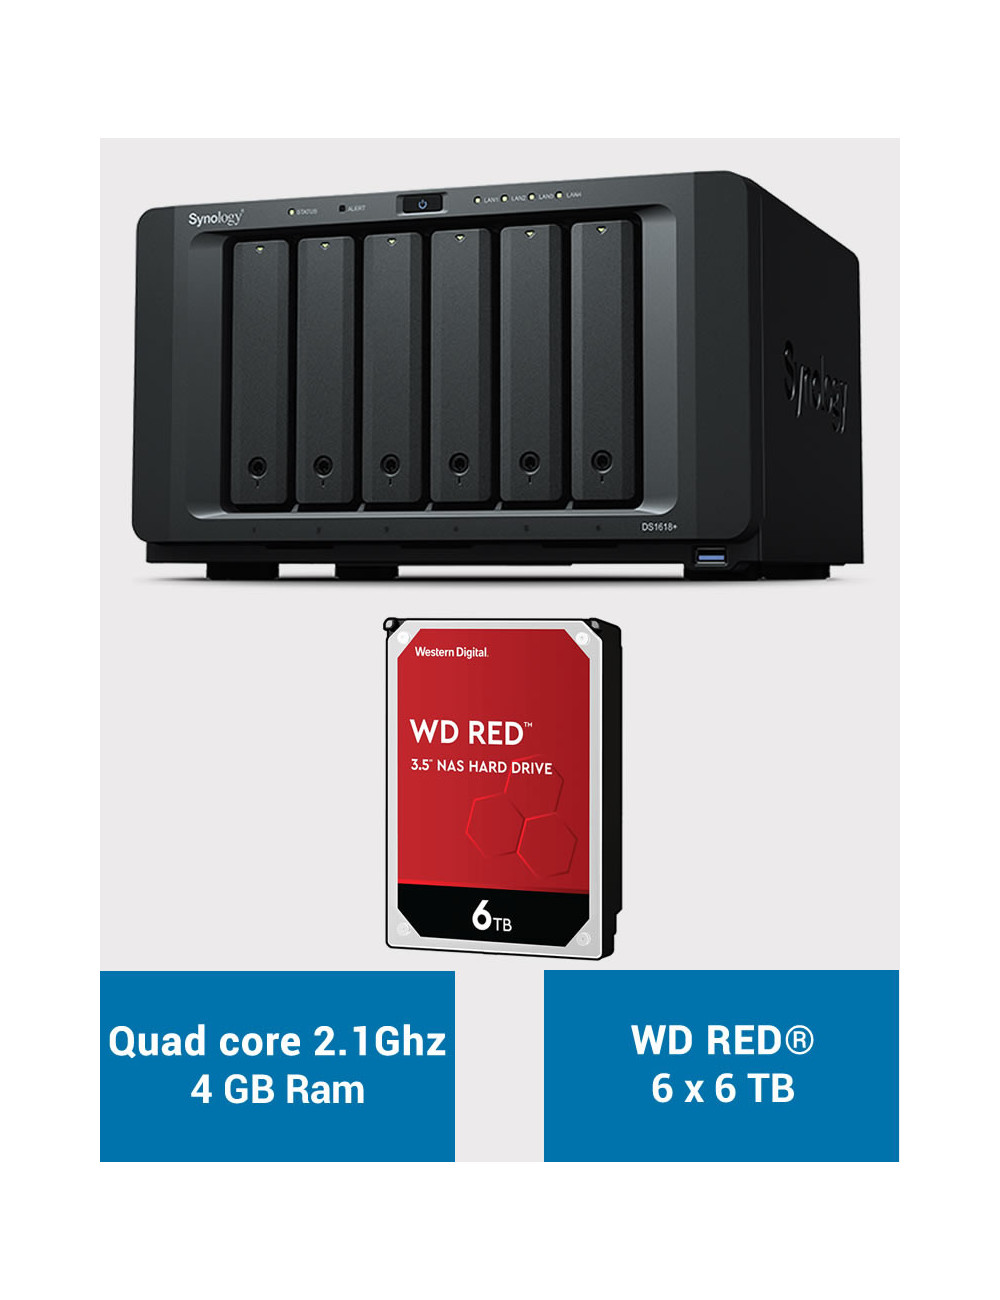 Synology DS1618+ Serveur NAS WD RED 36 To